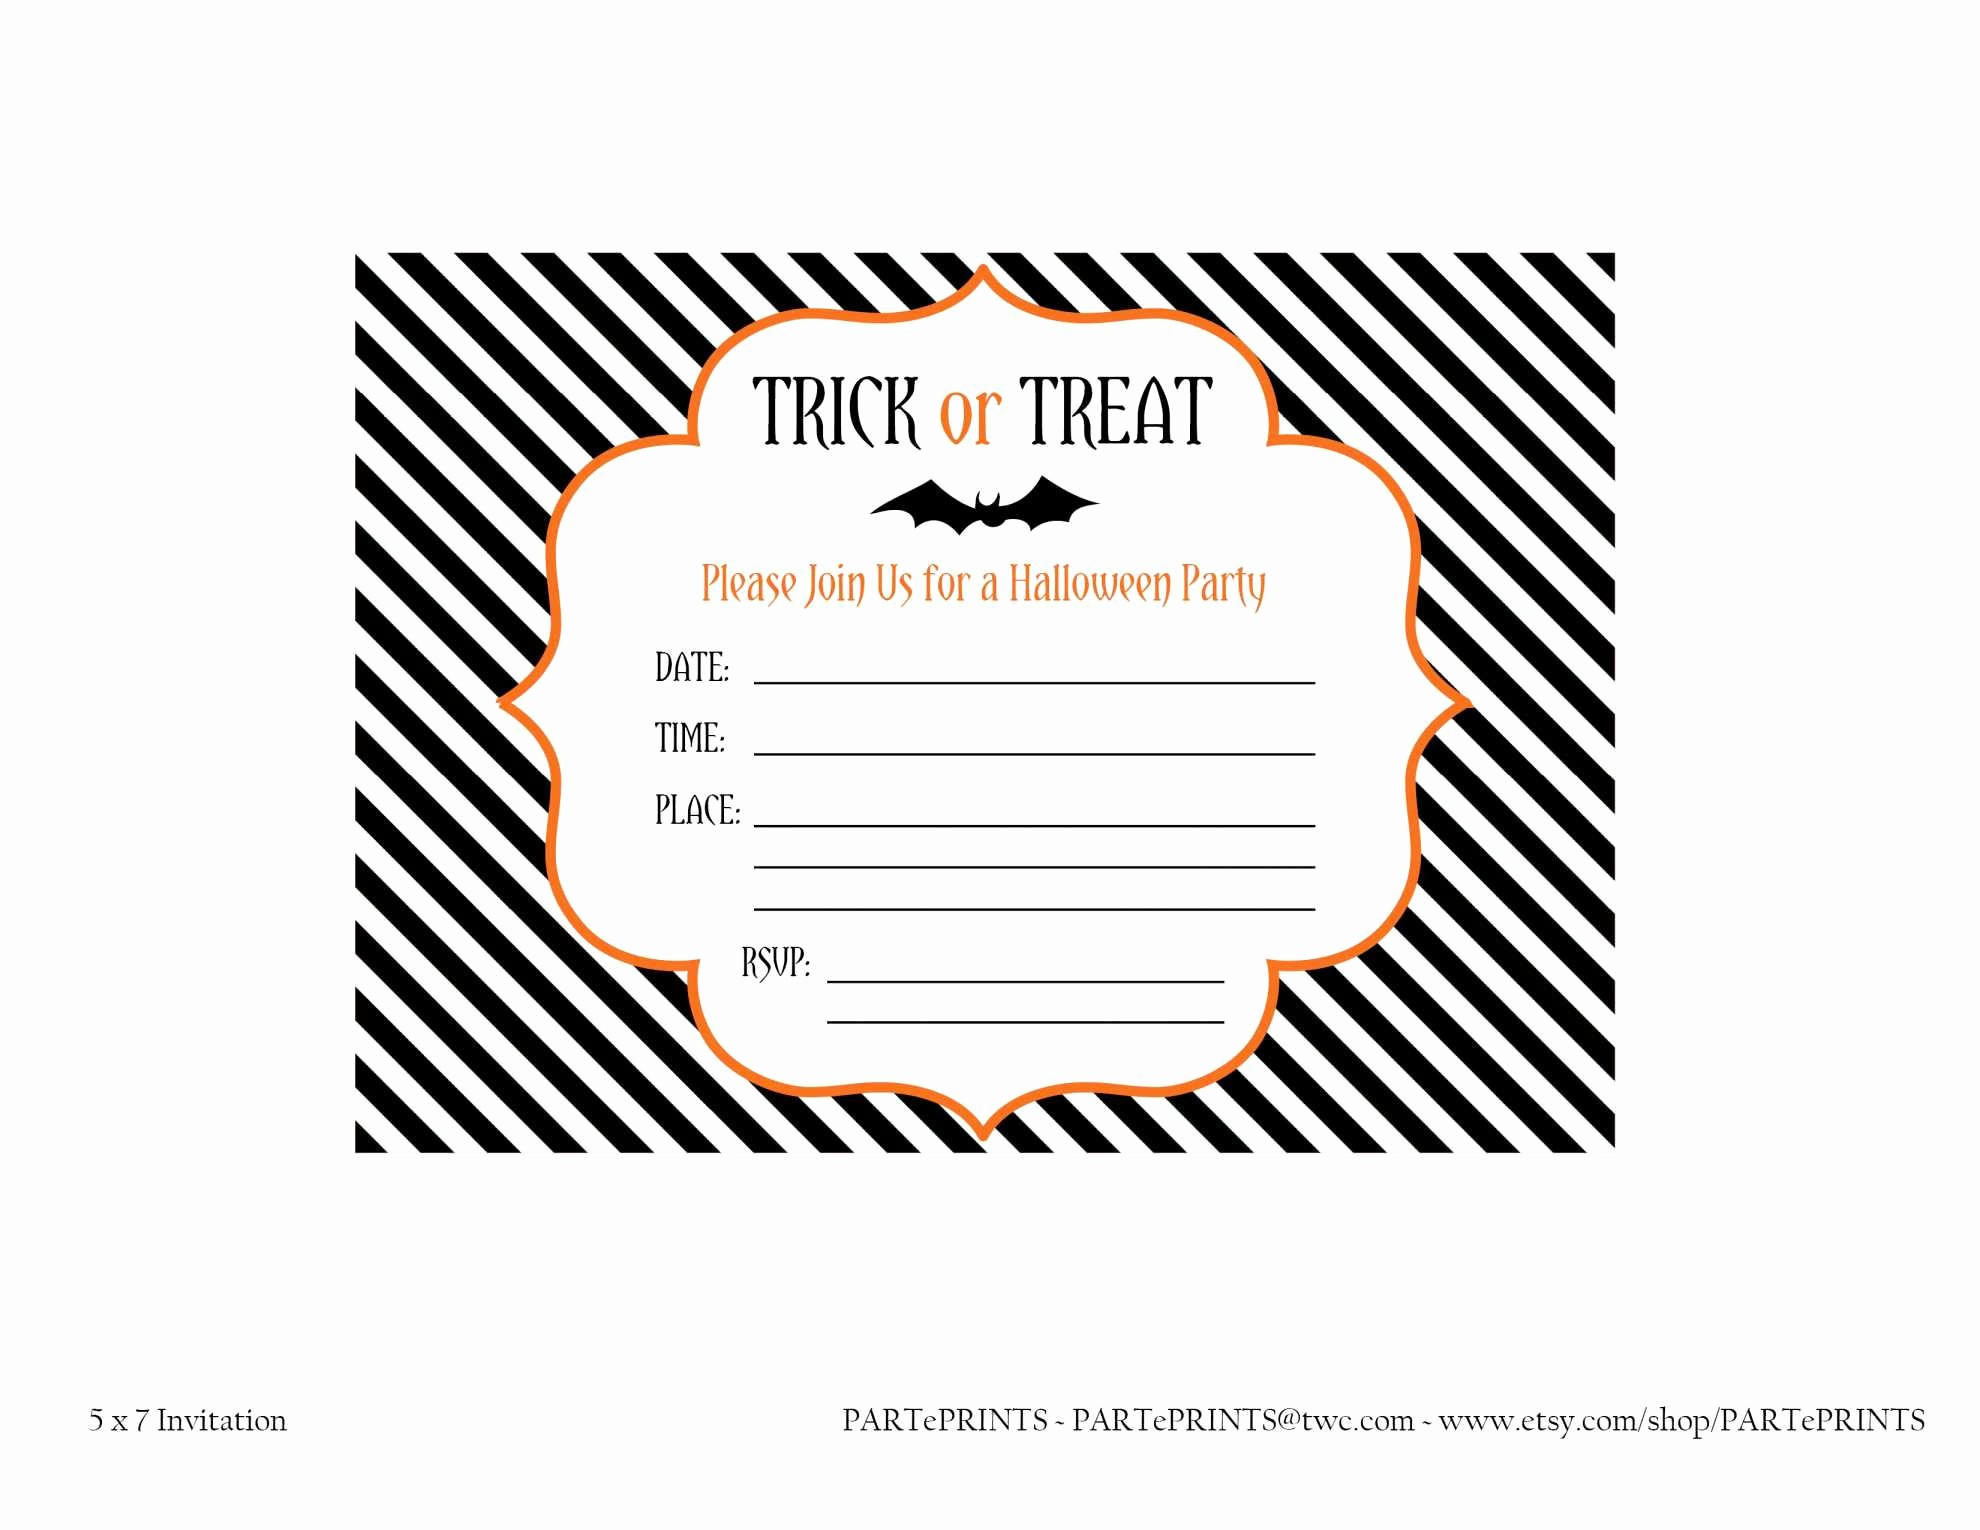 Party Food Sign Up Sheet Awesome Fresh Halloween Potluck Sign Up Sheet Template